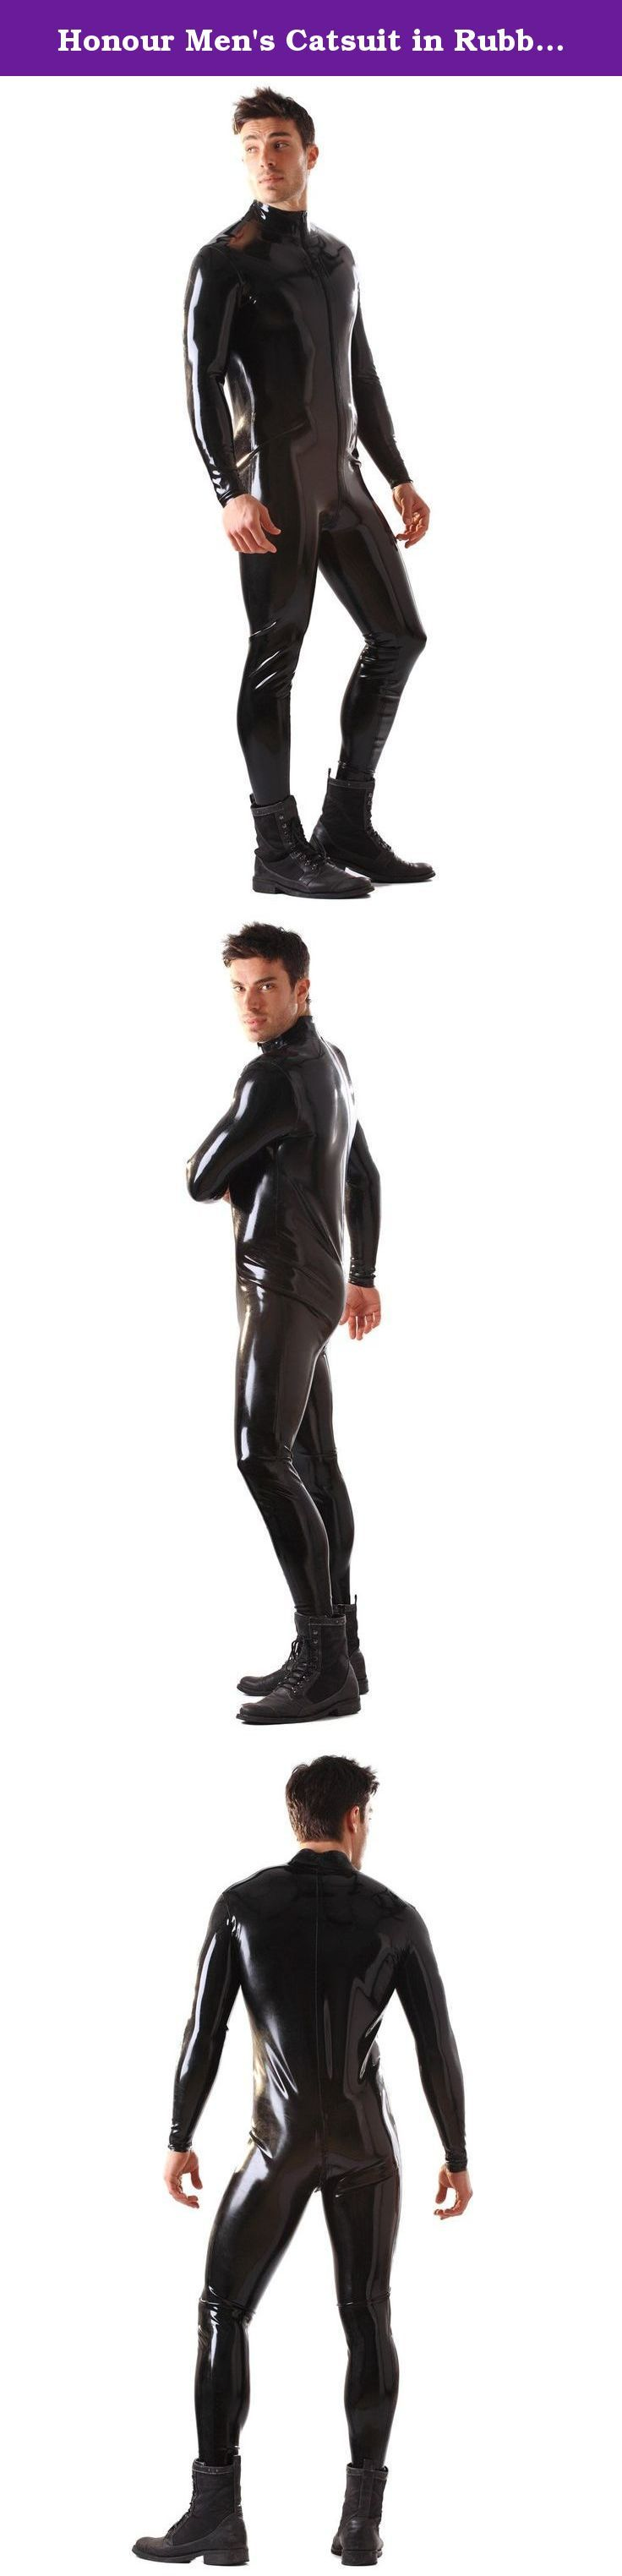 Honour Men's Catsuit in Rubber Black size M. Classic glued rubber catsuit, with high collar, long sleeves, and a two-way front zip runs from the neck to the bottom of the back, for easy access.